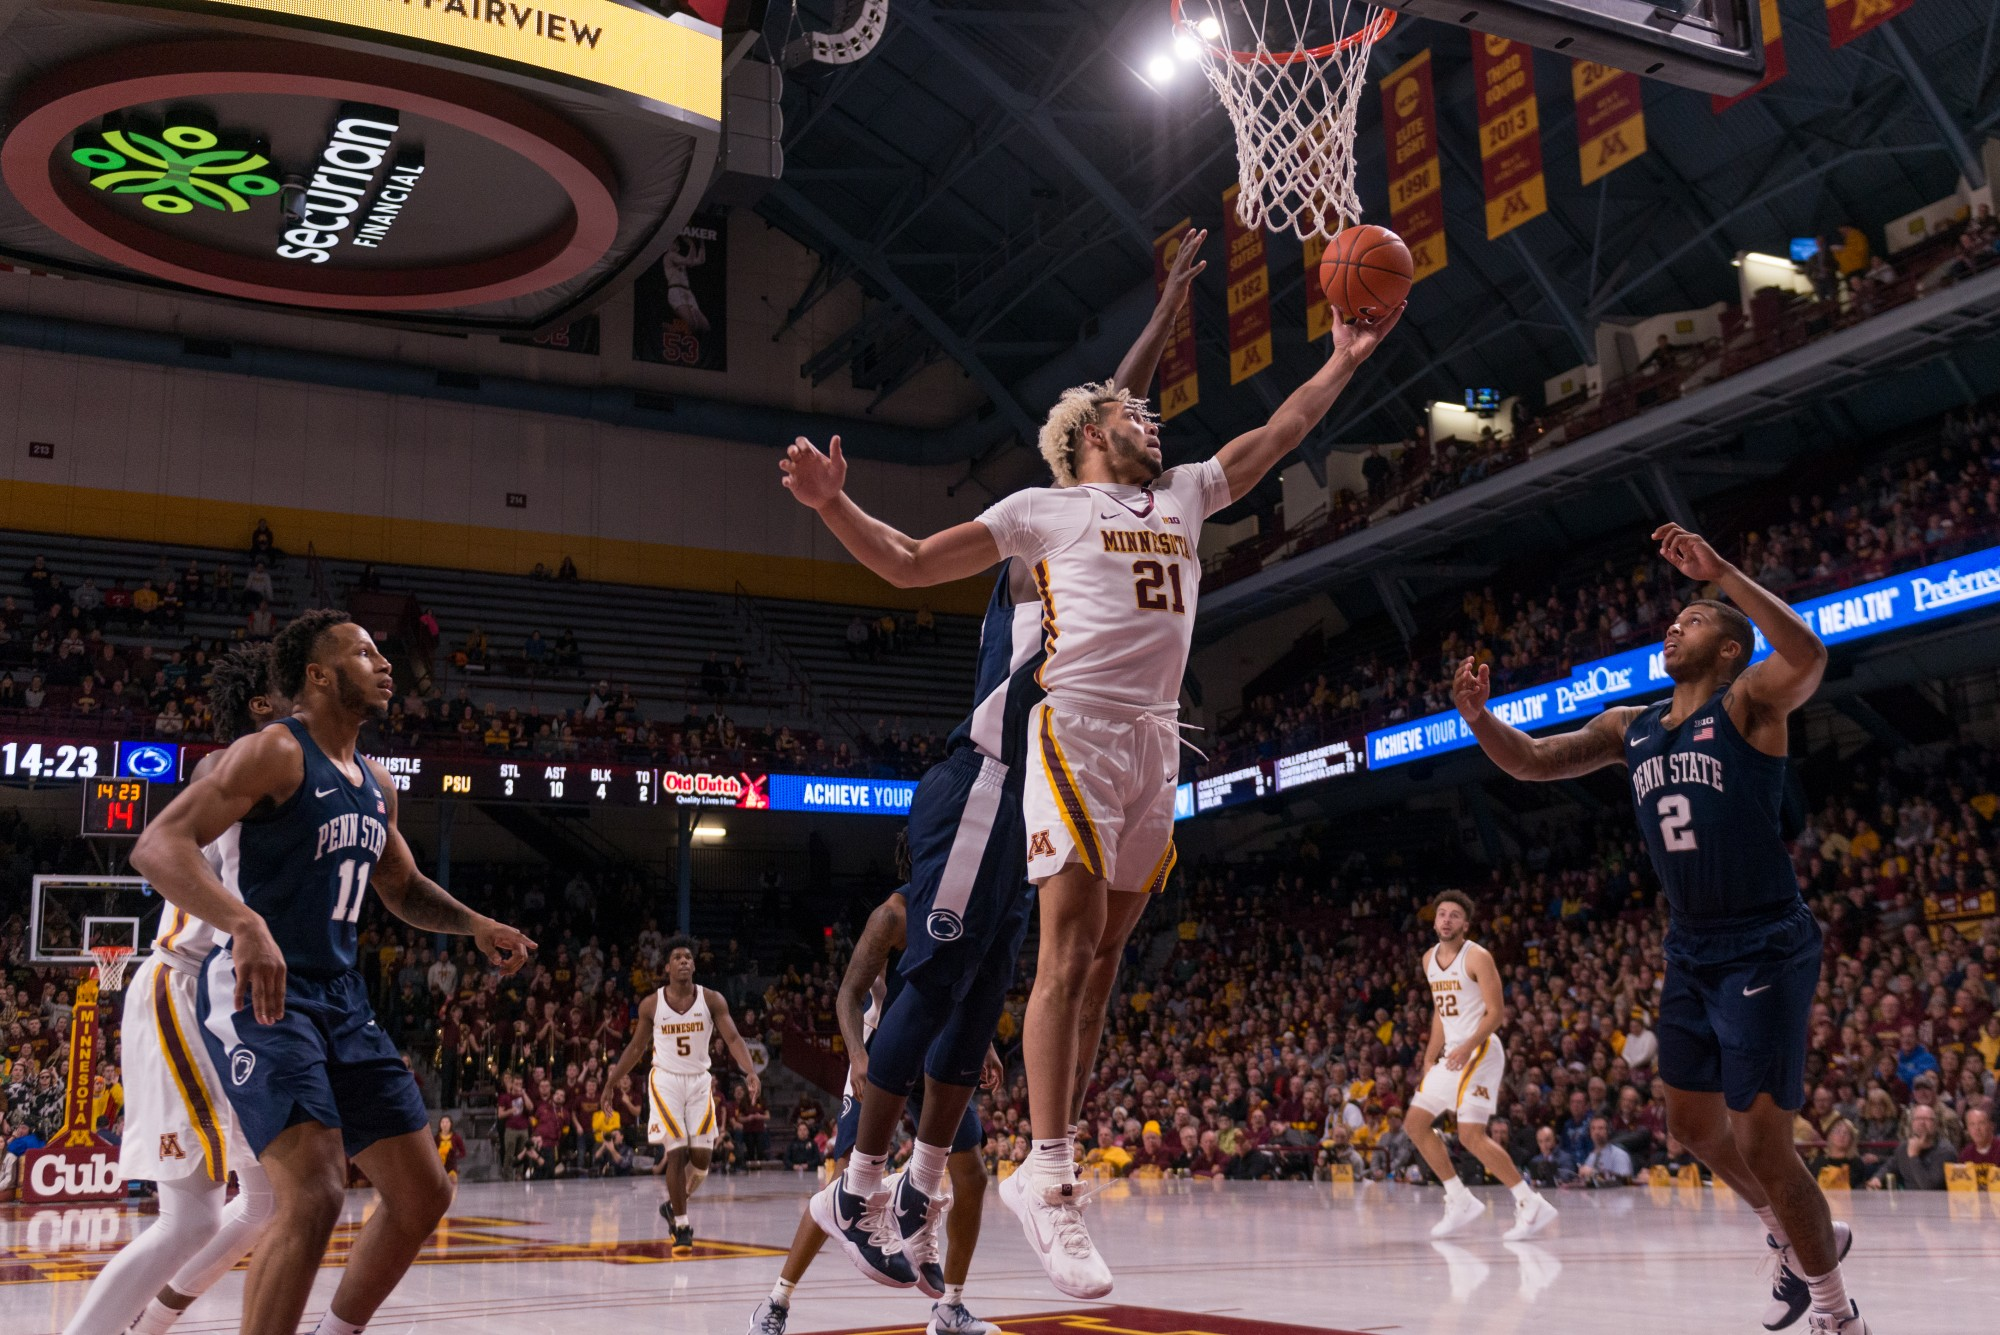 Gophers Forward Jarvis Omersa lays up the ball at Williams Arena on Wednesday, Jan. 15.  Minnesota defeated the Penn State Nittany Lions 75-69. (Kamaan Richards / Minnesota Daily)